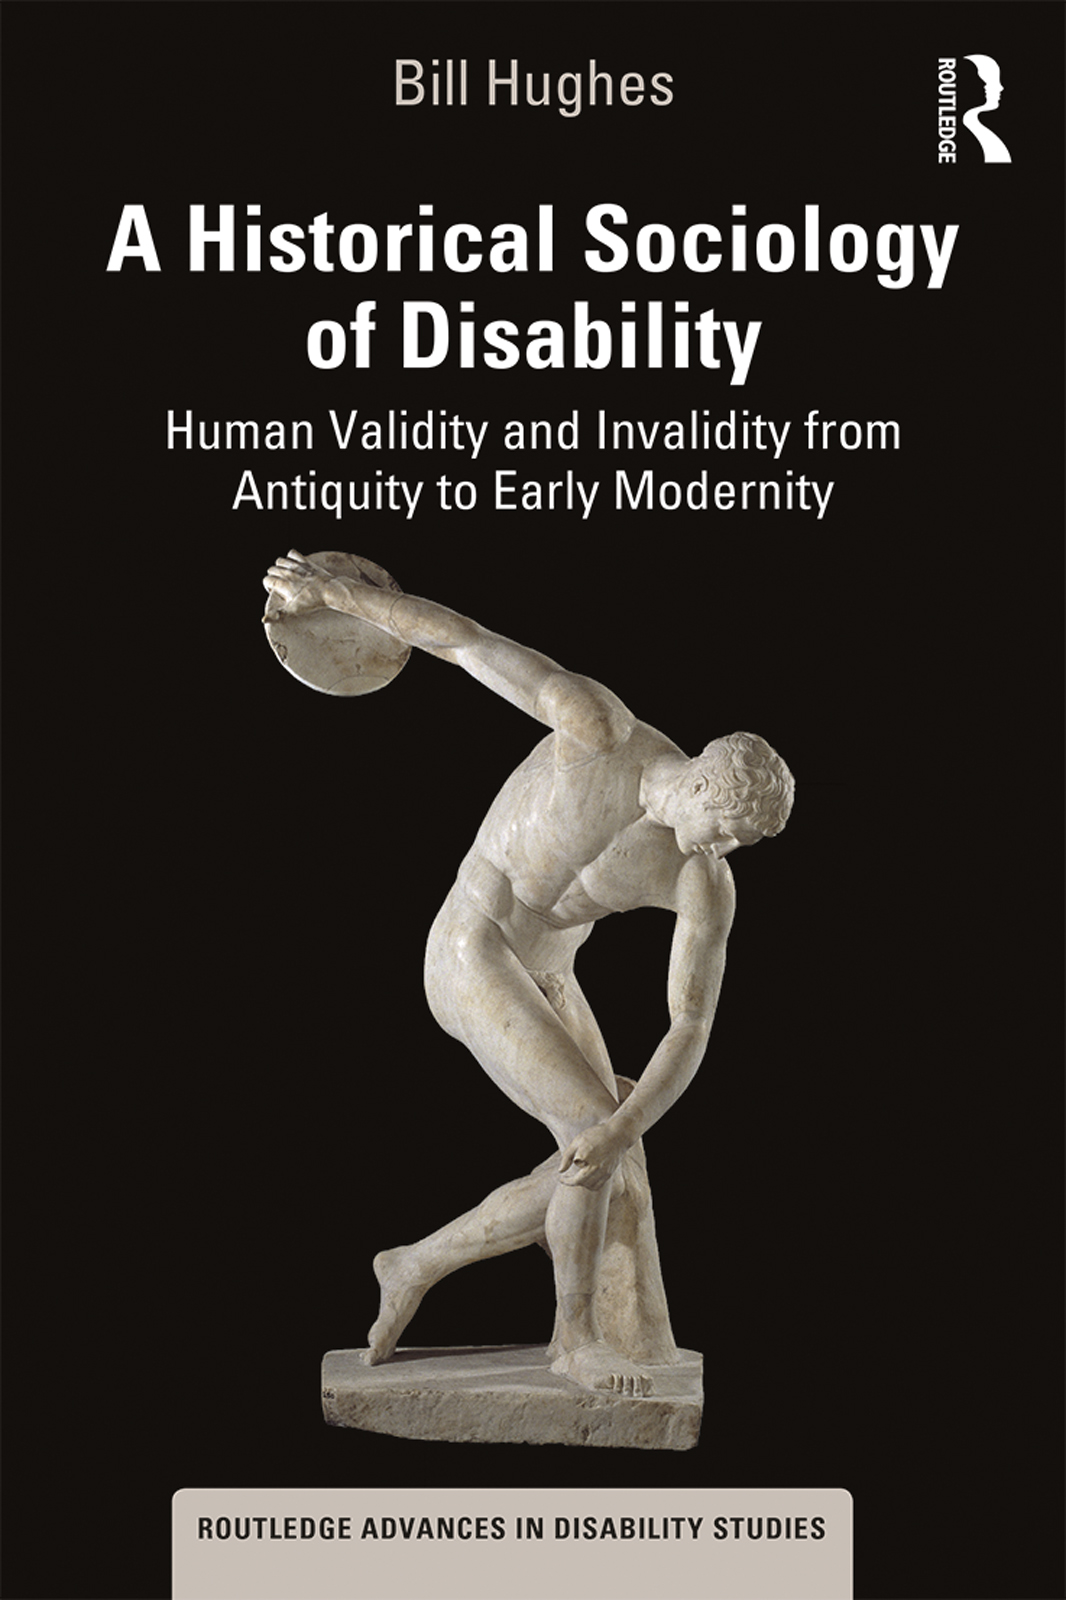 A Historical Sociology of Disability: Human Validity and Invalidity from Antiquity to Early Modernity book cover